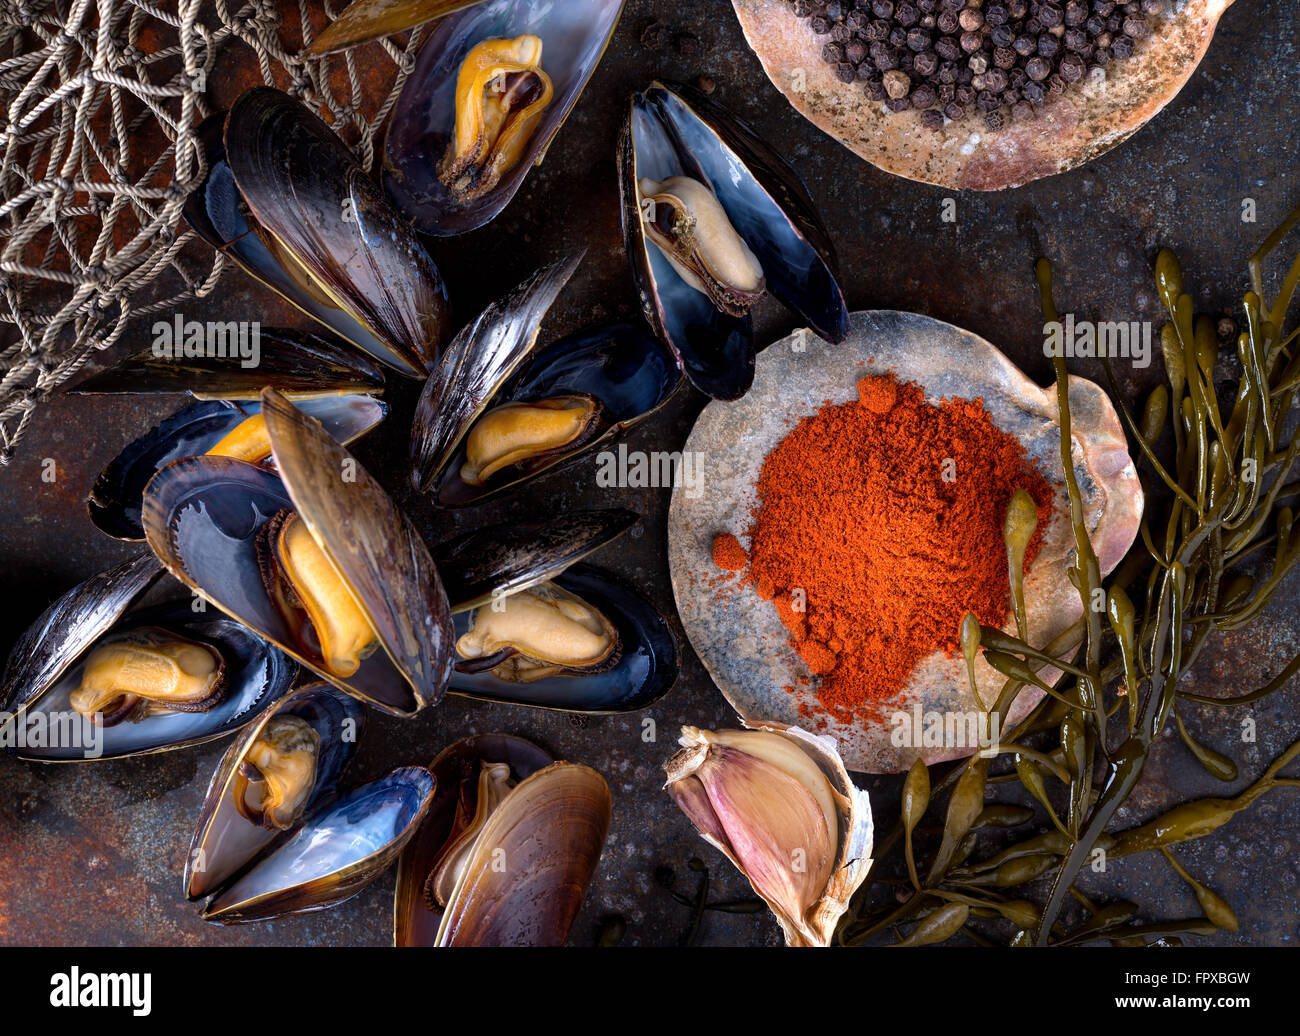 Steamed mussels on a rustic background with paprika, pepper, garlic, and seaweed. - Stock Image